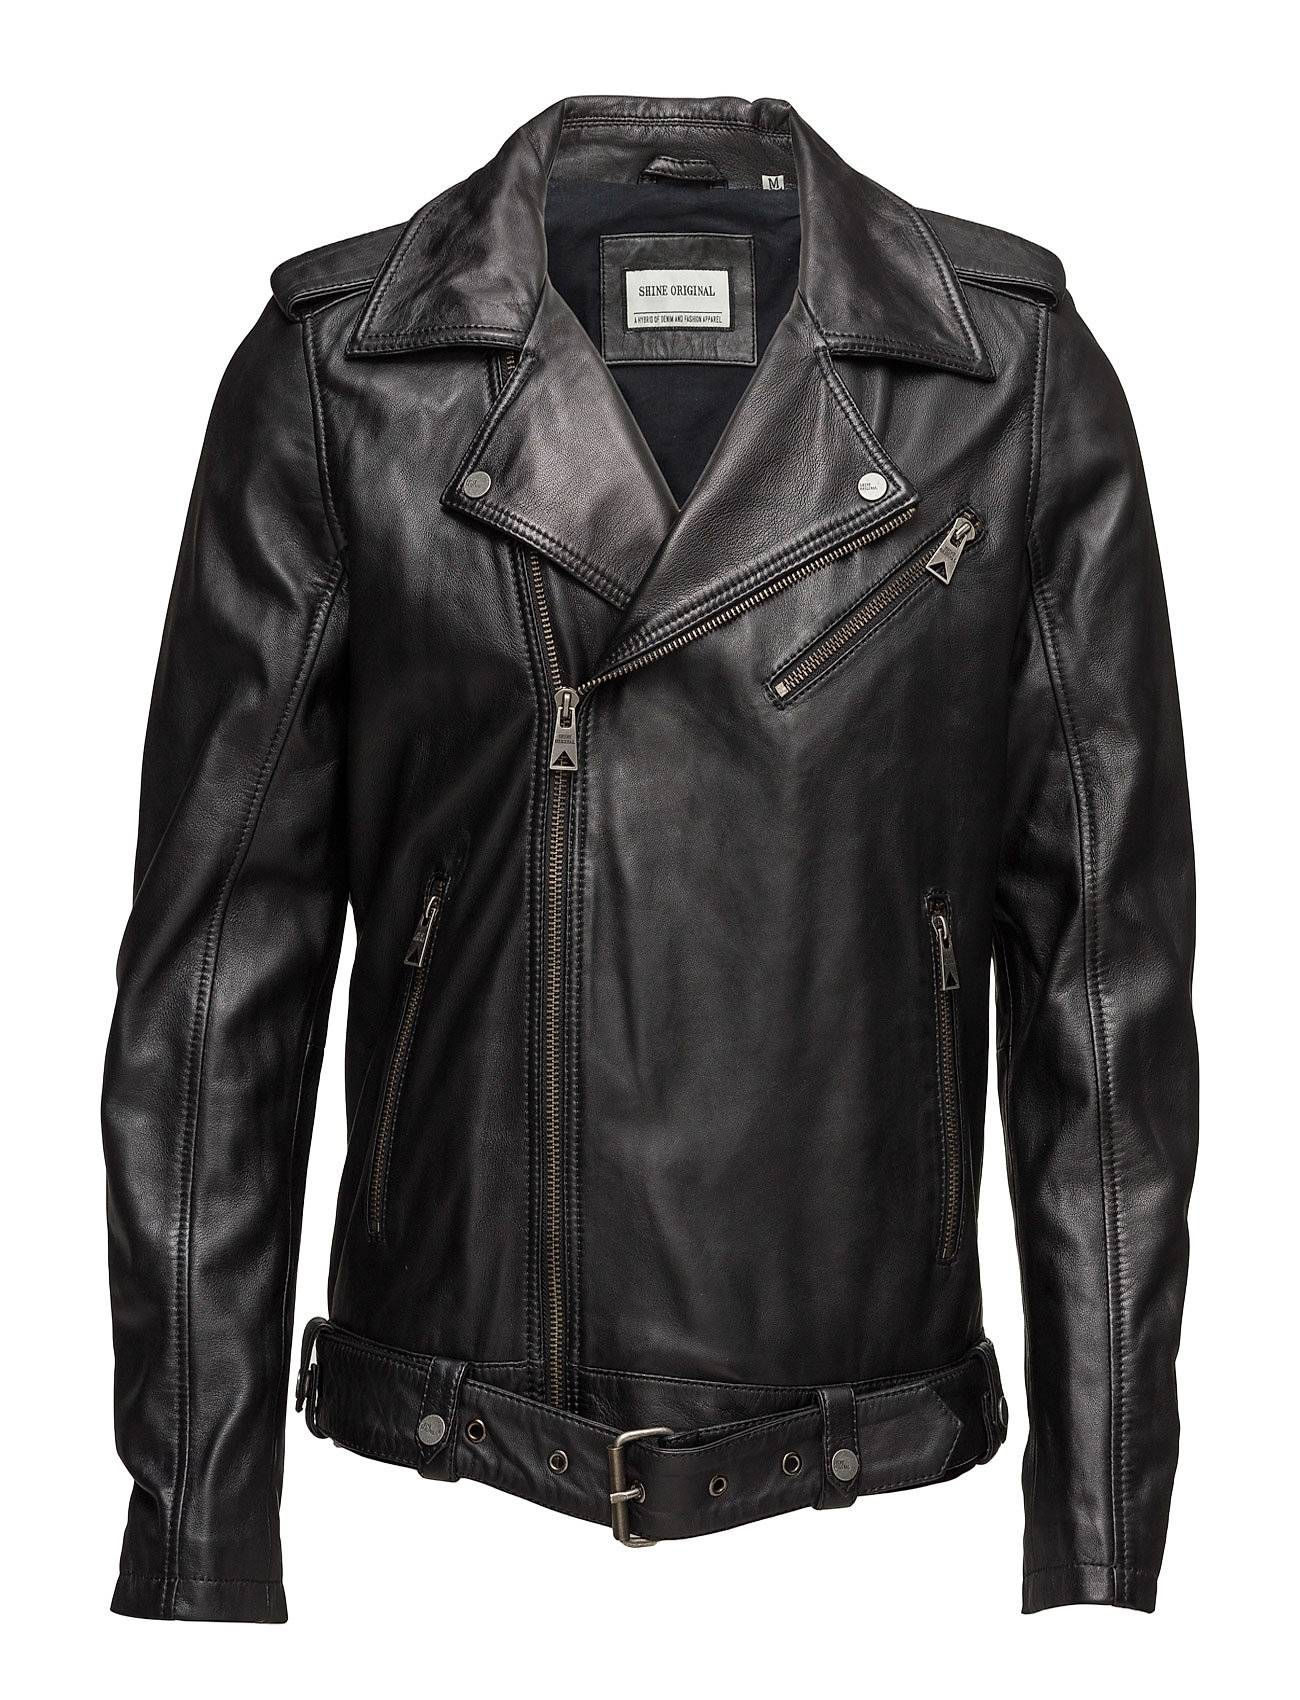 Shine Original Worn Look Leather Biker Jacket